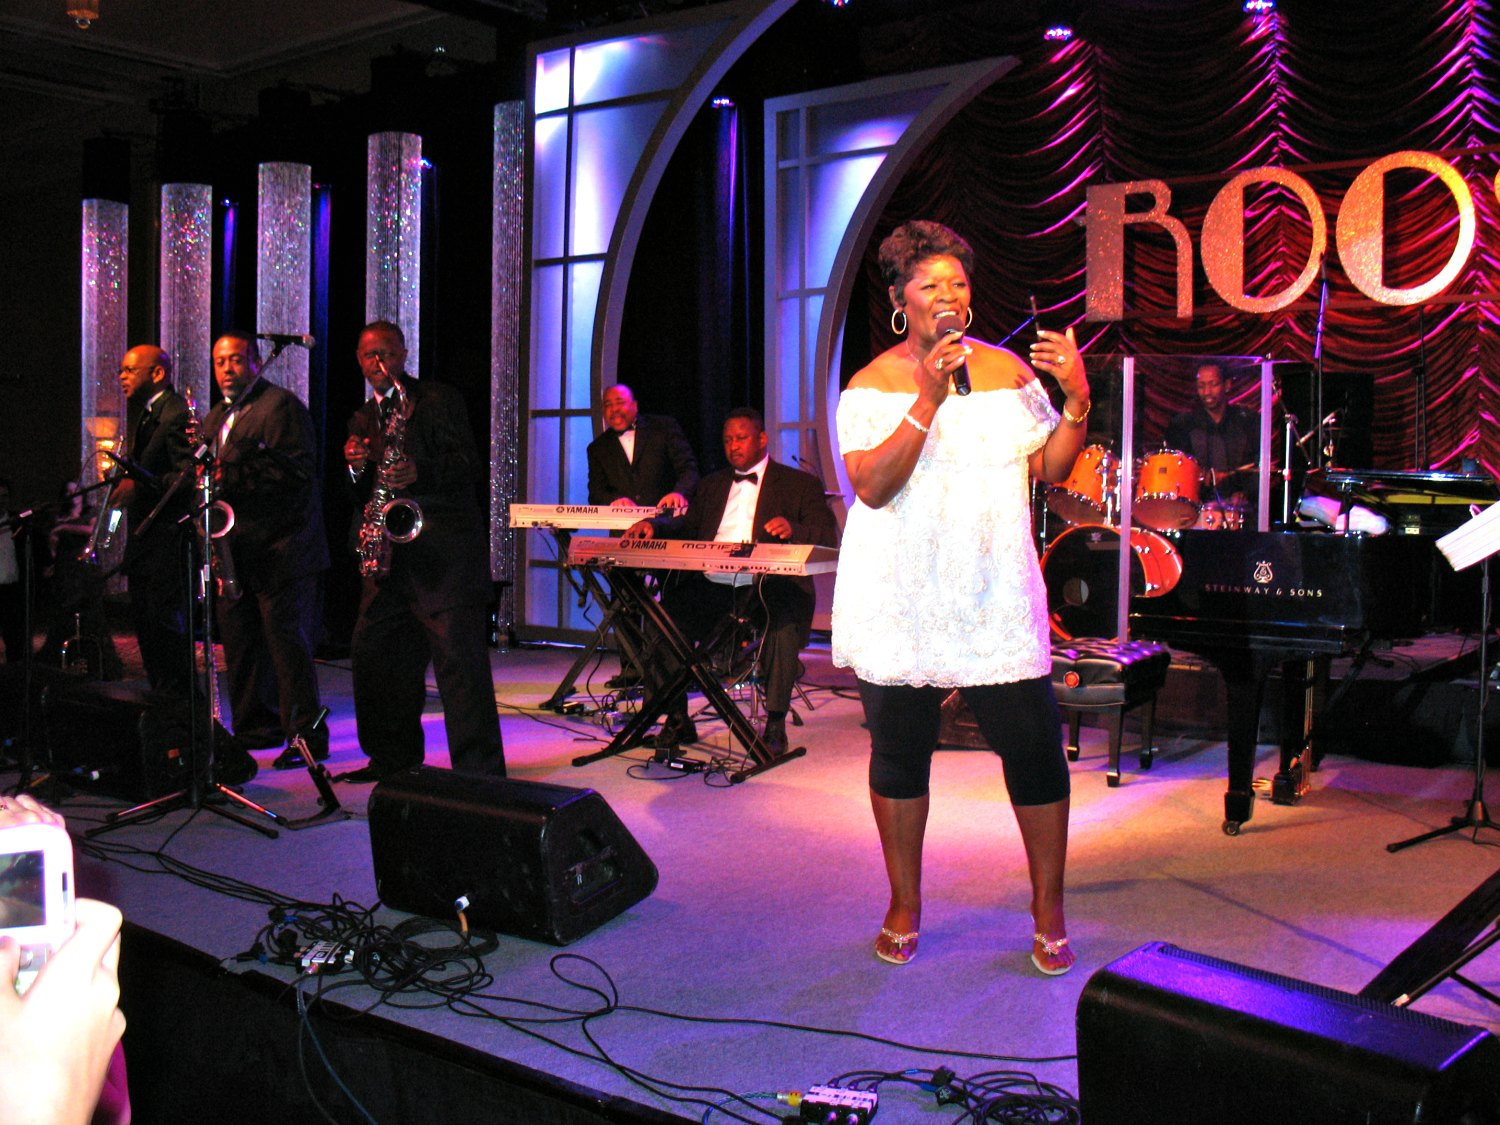 Irma feeling at home onstage with a full blues band to accompany her magical voice. Photo: Marie Carianna (Wikimedia Commons)